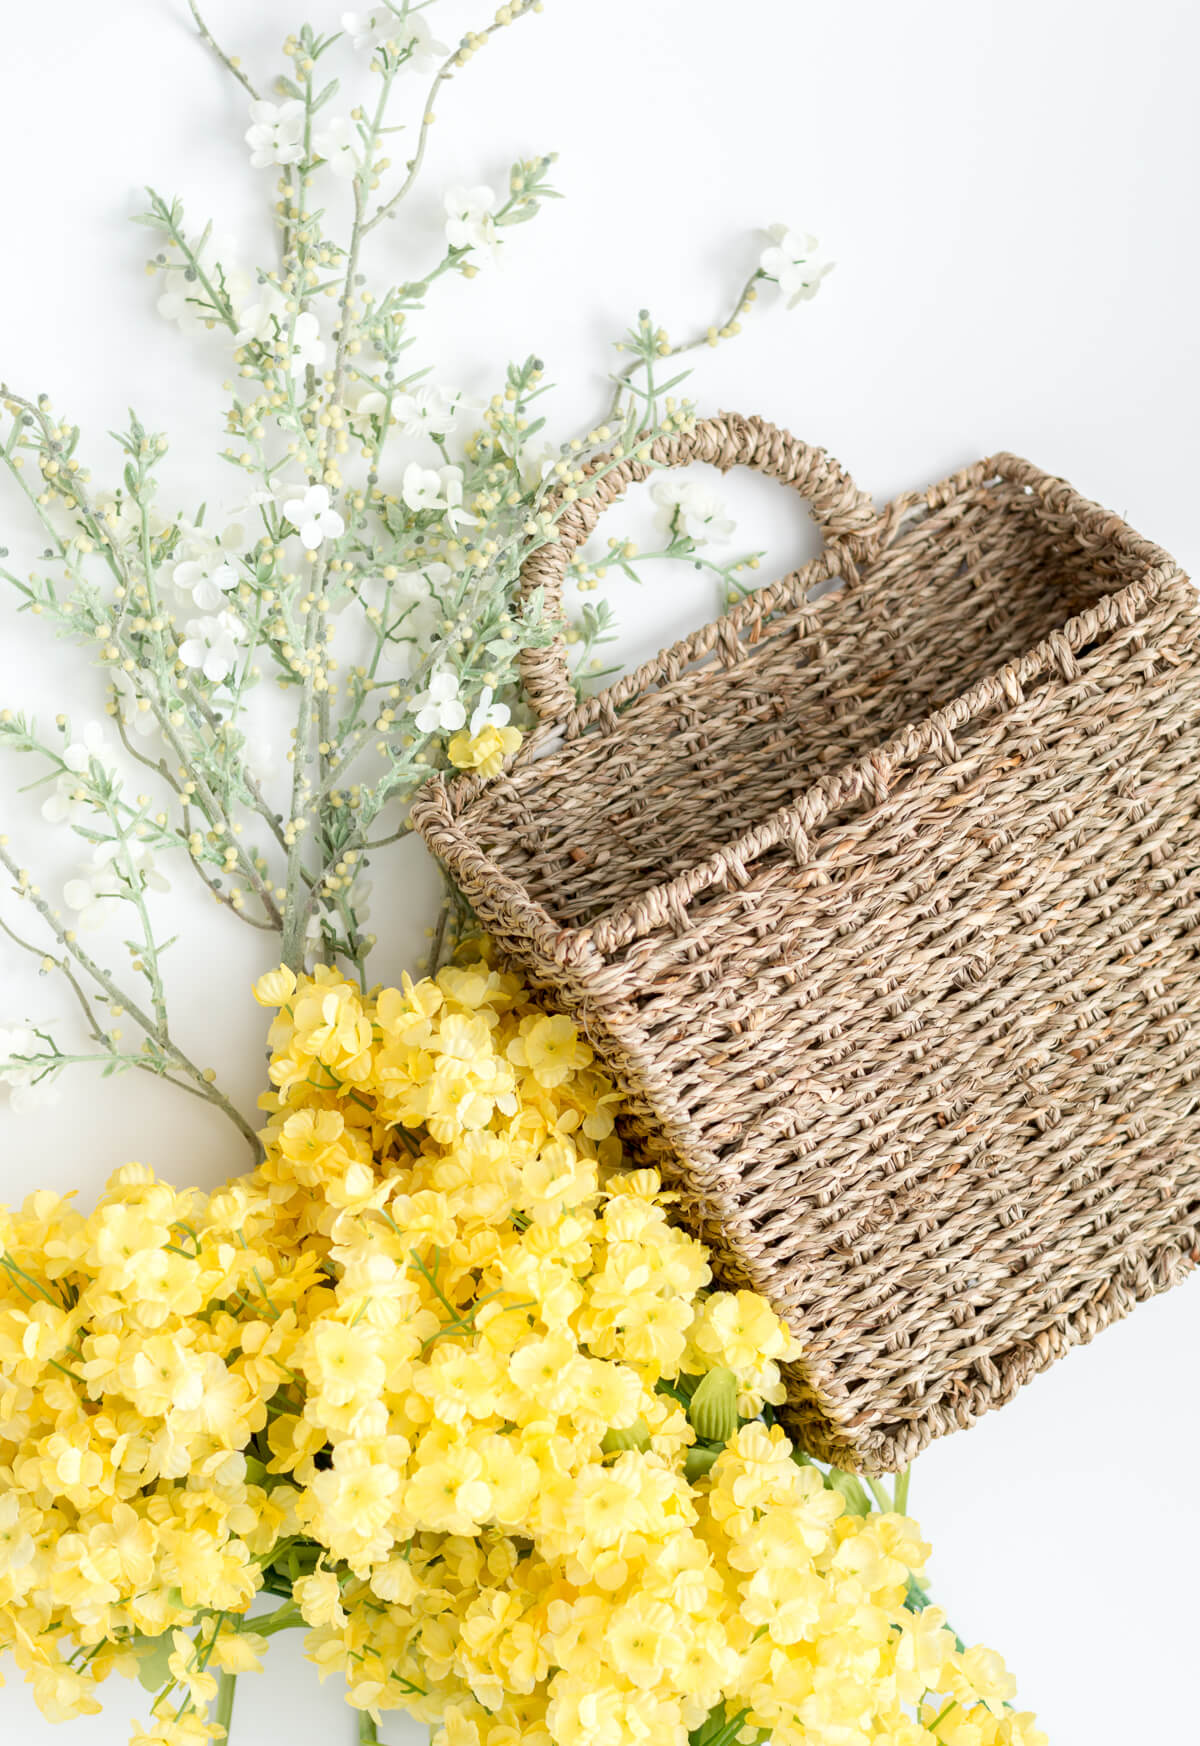 5 Minute Diy Spring Flower Door Basket Video The Home I Create